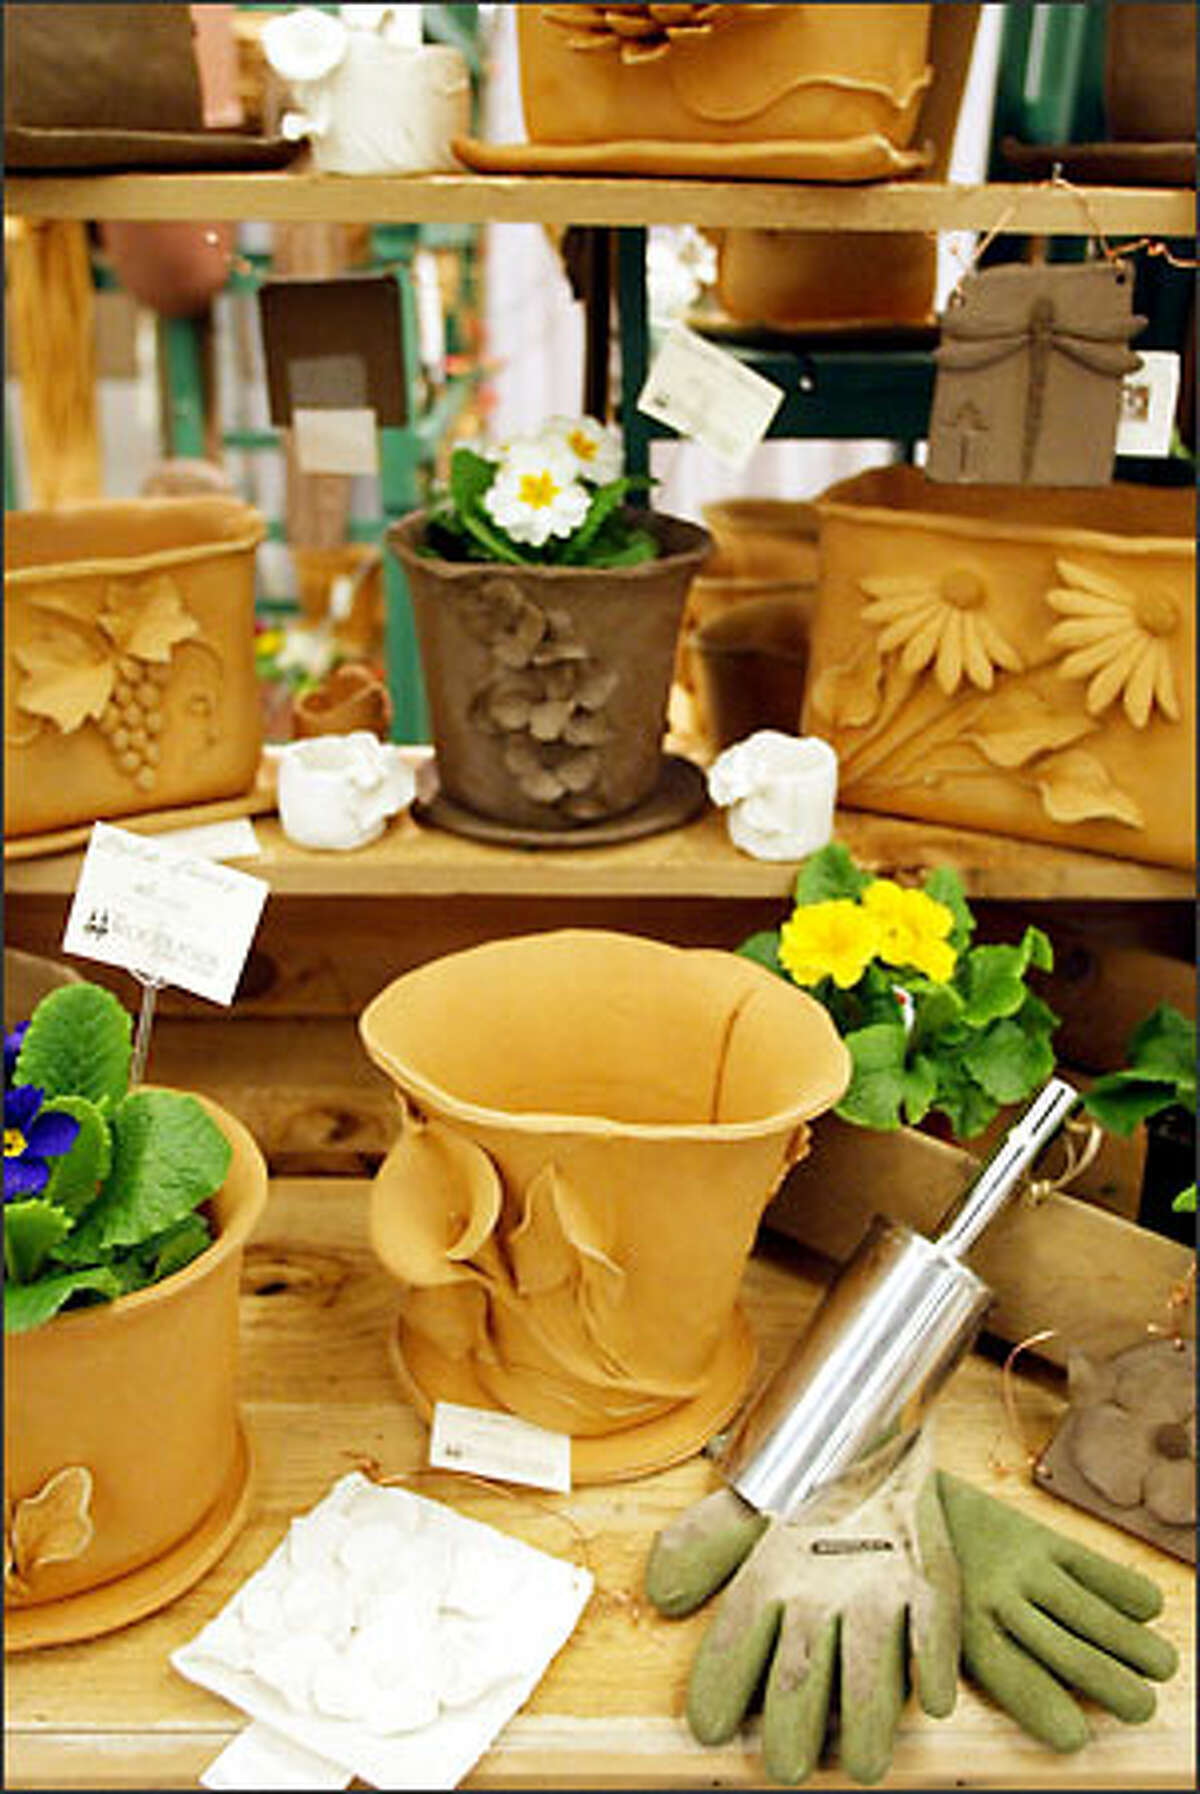 The high-fired stoneware pots in the Woodlands Garden Pottery Booth would be at home indoors or out.